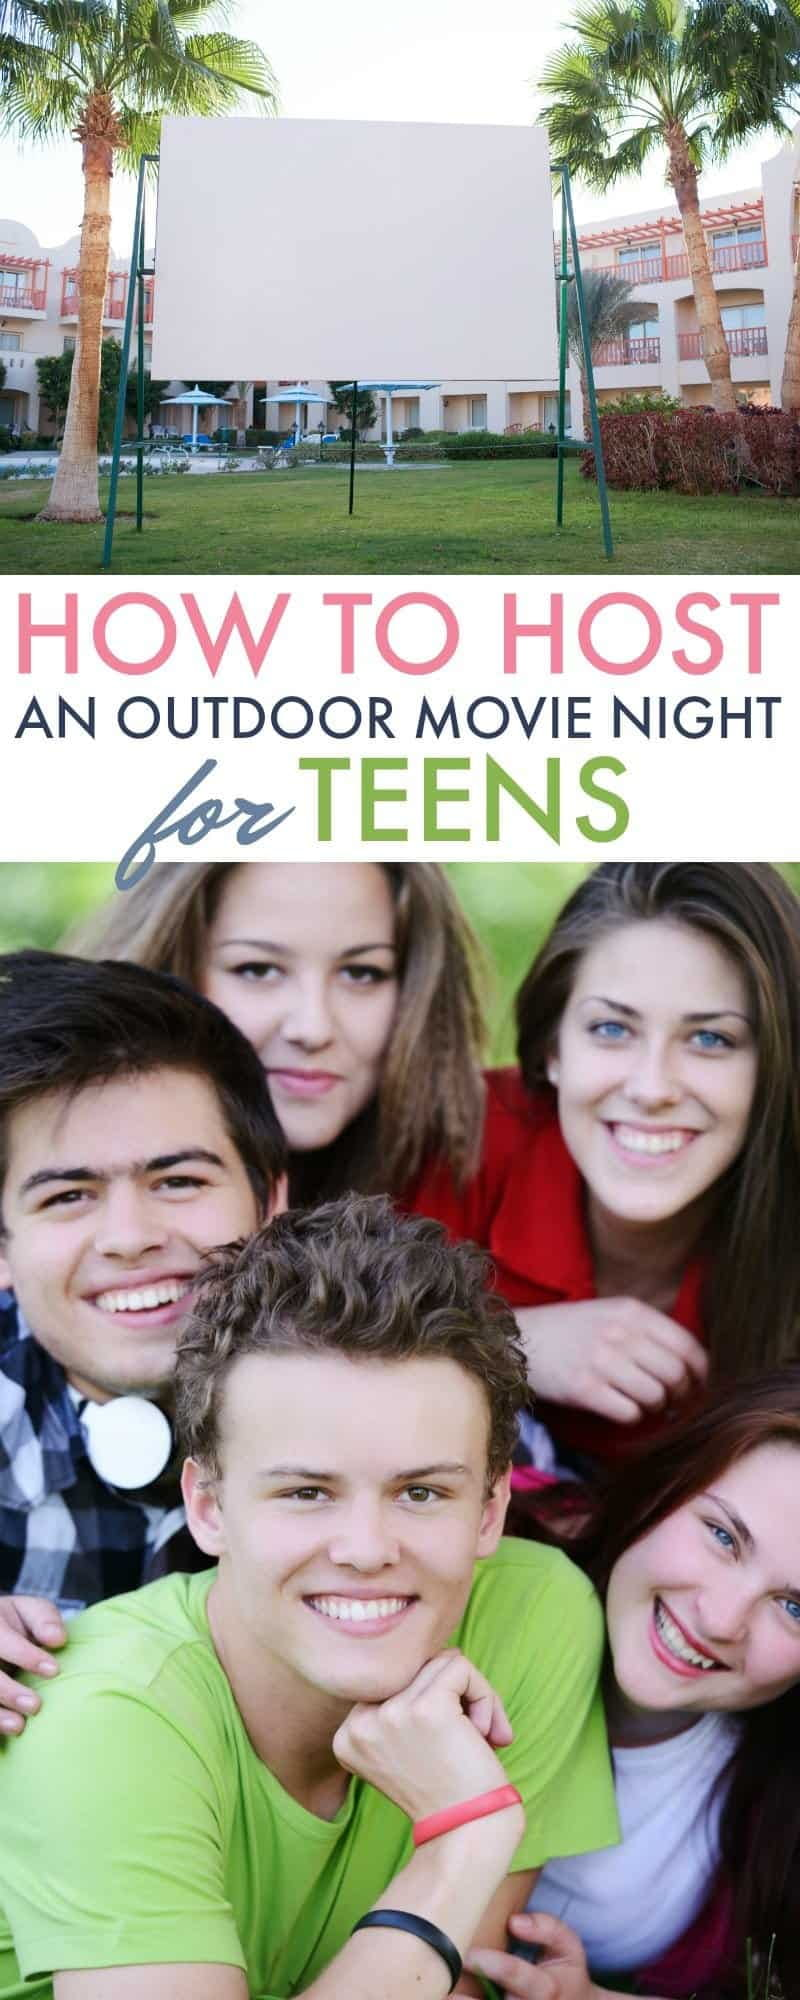 Get teens out of the house and off their phones for a little bit with these tips for How to Host an Outdoor Movie Night for Teens with Netflix PG-13 Movies.